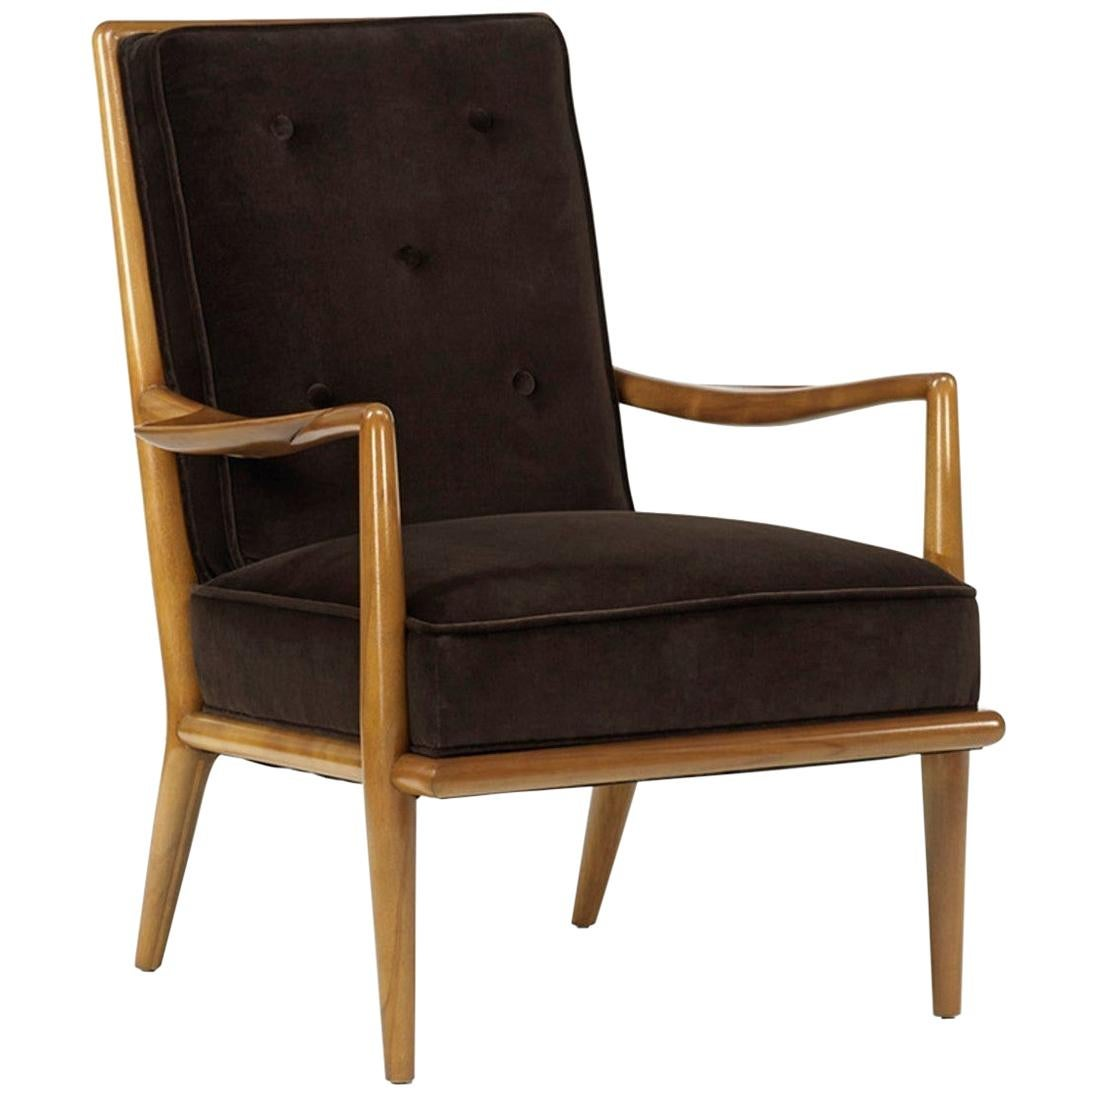 T.H. Robsjohn-Gibbings Arm Lounge Chair